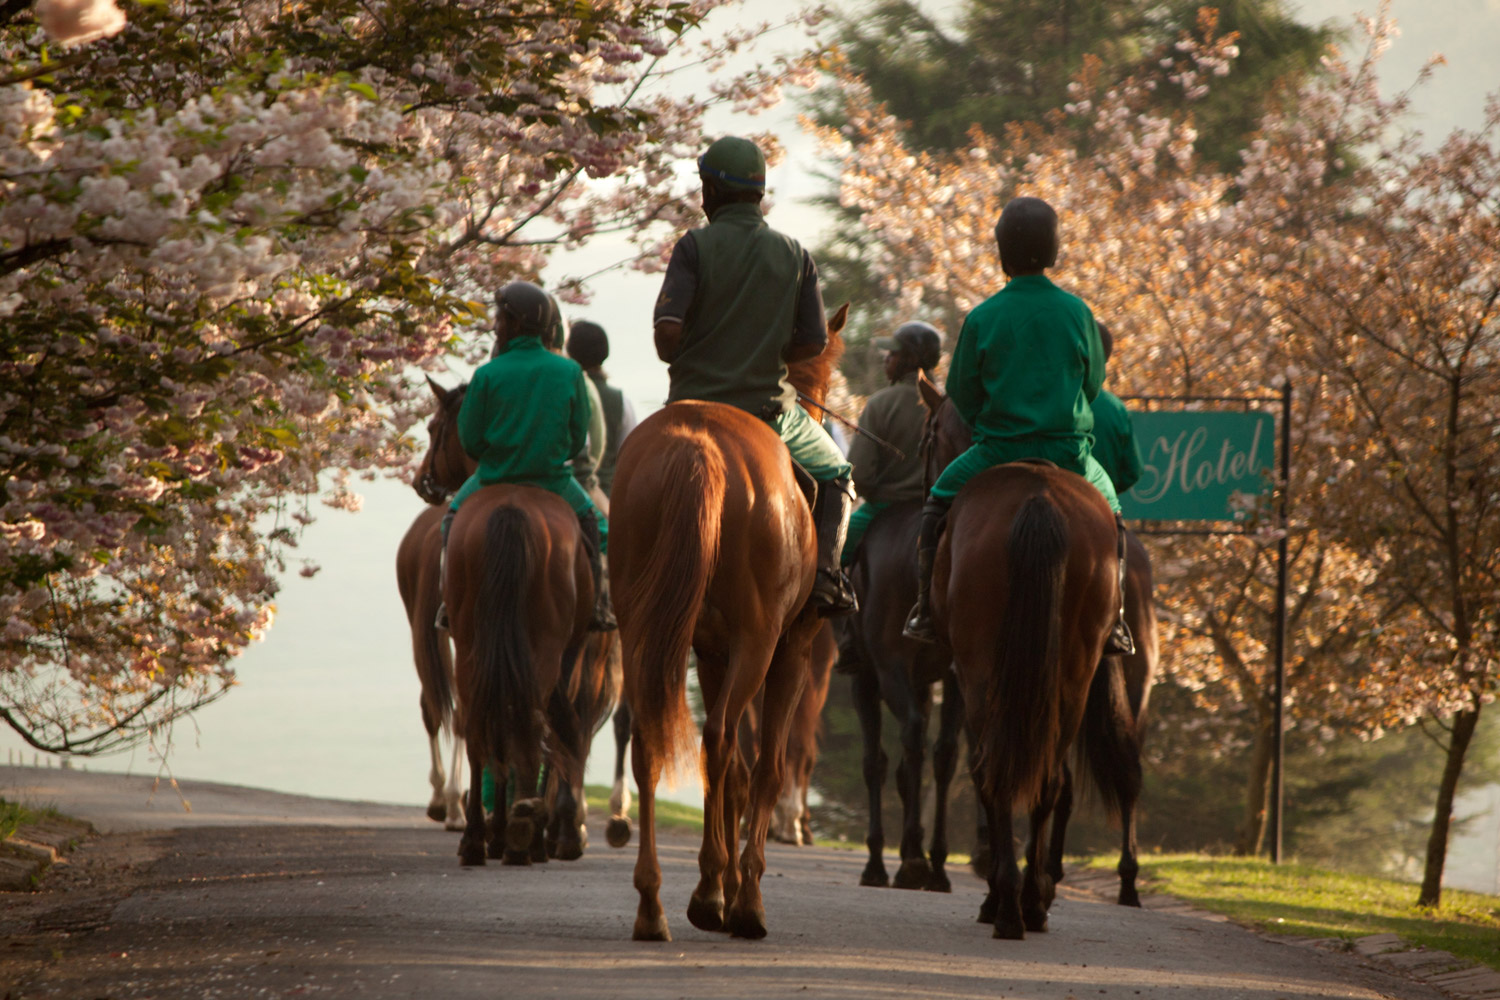 Horses on a morning walk through the Spring cherry blossoms at Hartford House / Gareth du Plessis (p)